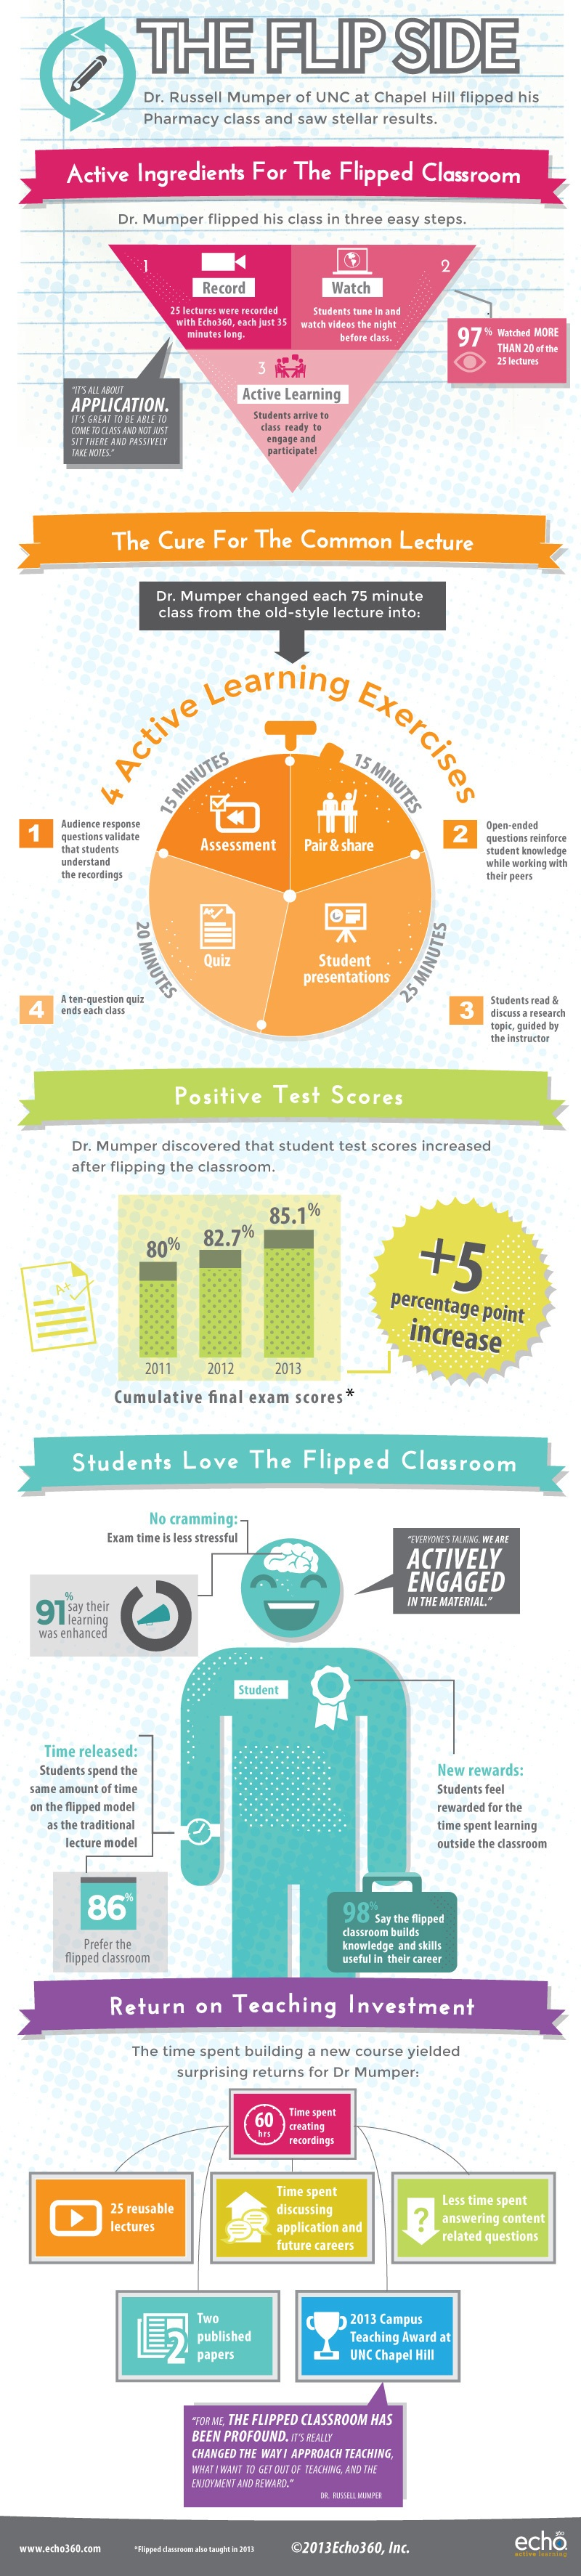 Active Ingredients For The Flipped Classroom Infographic